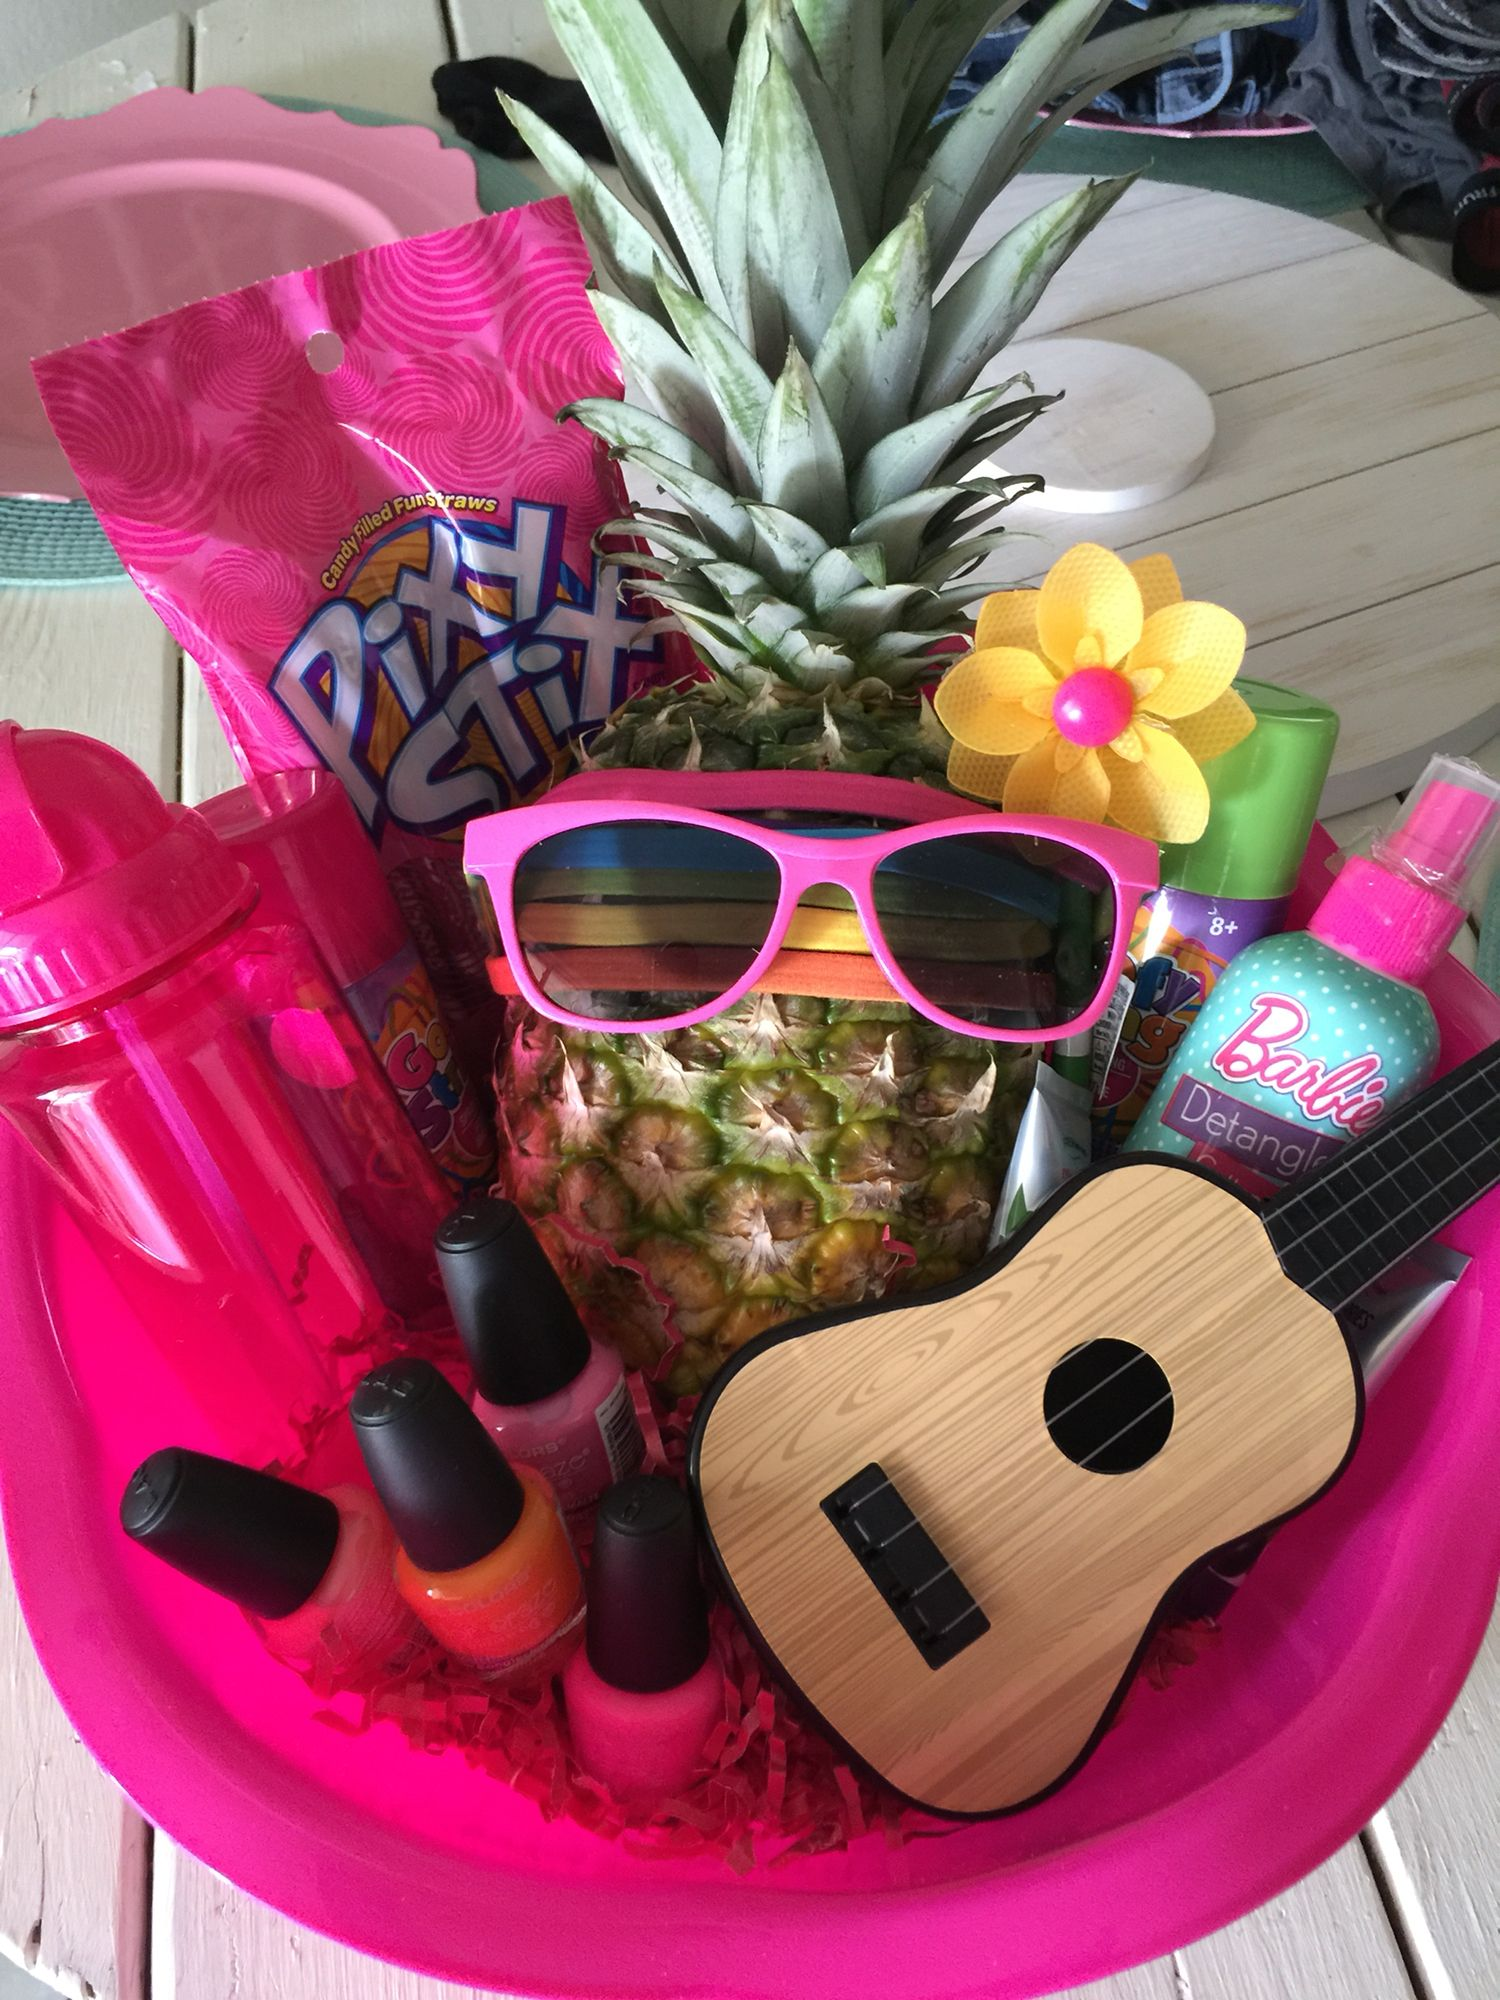 Made this DIY Hawaiian themed basket for a little girls birthday